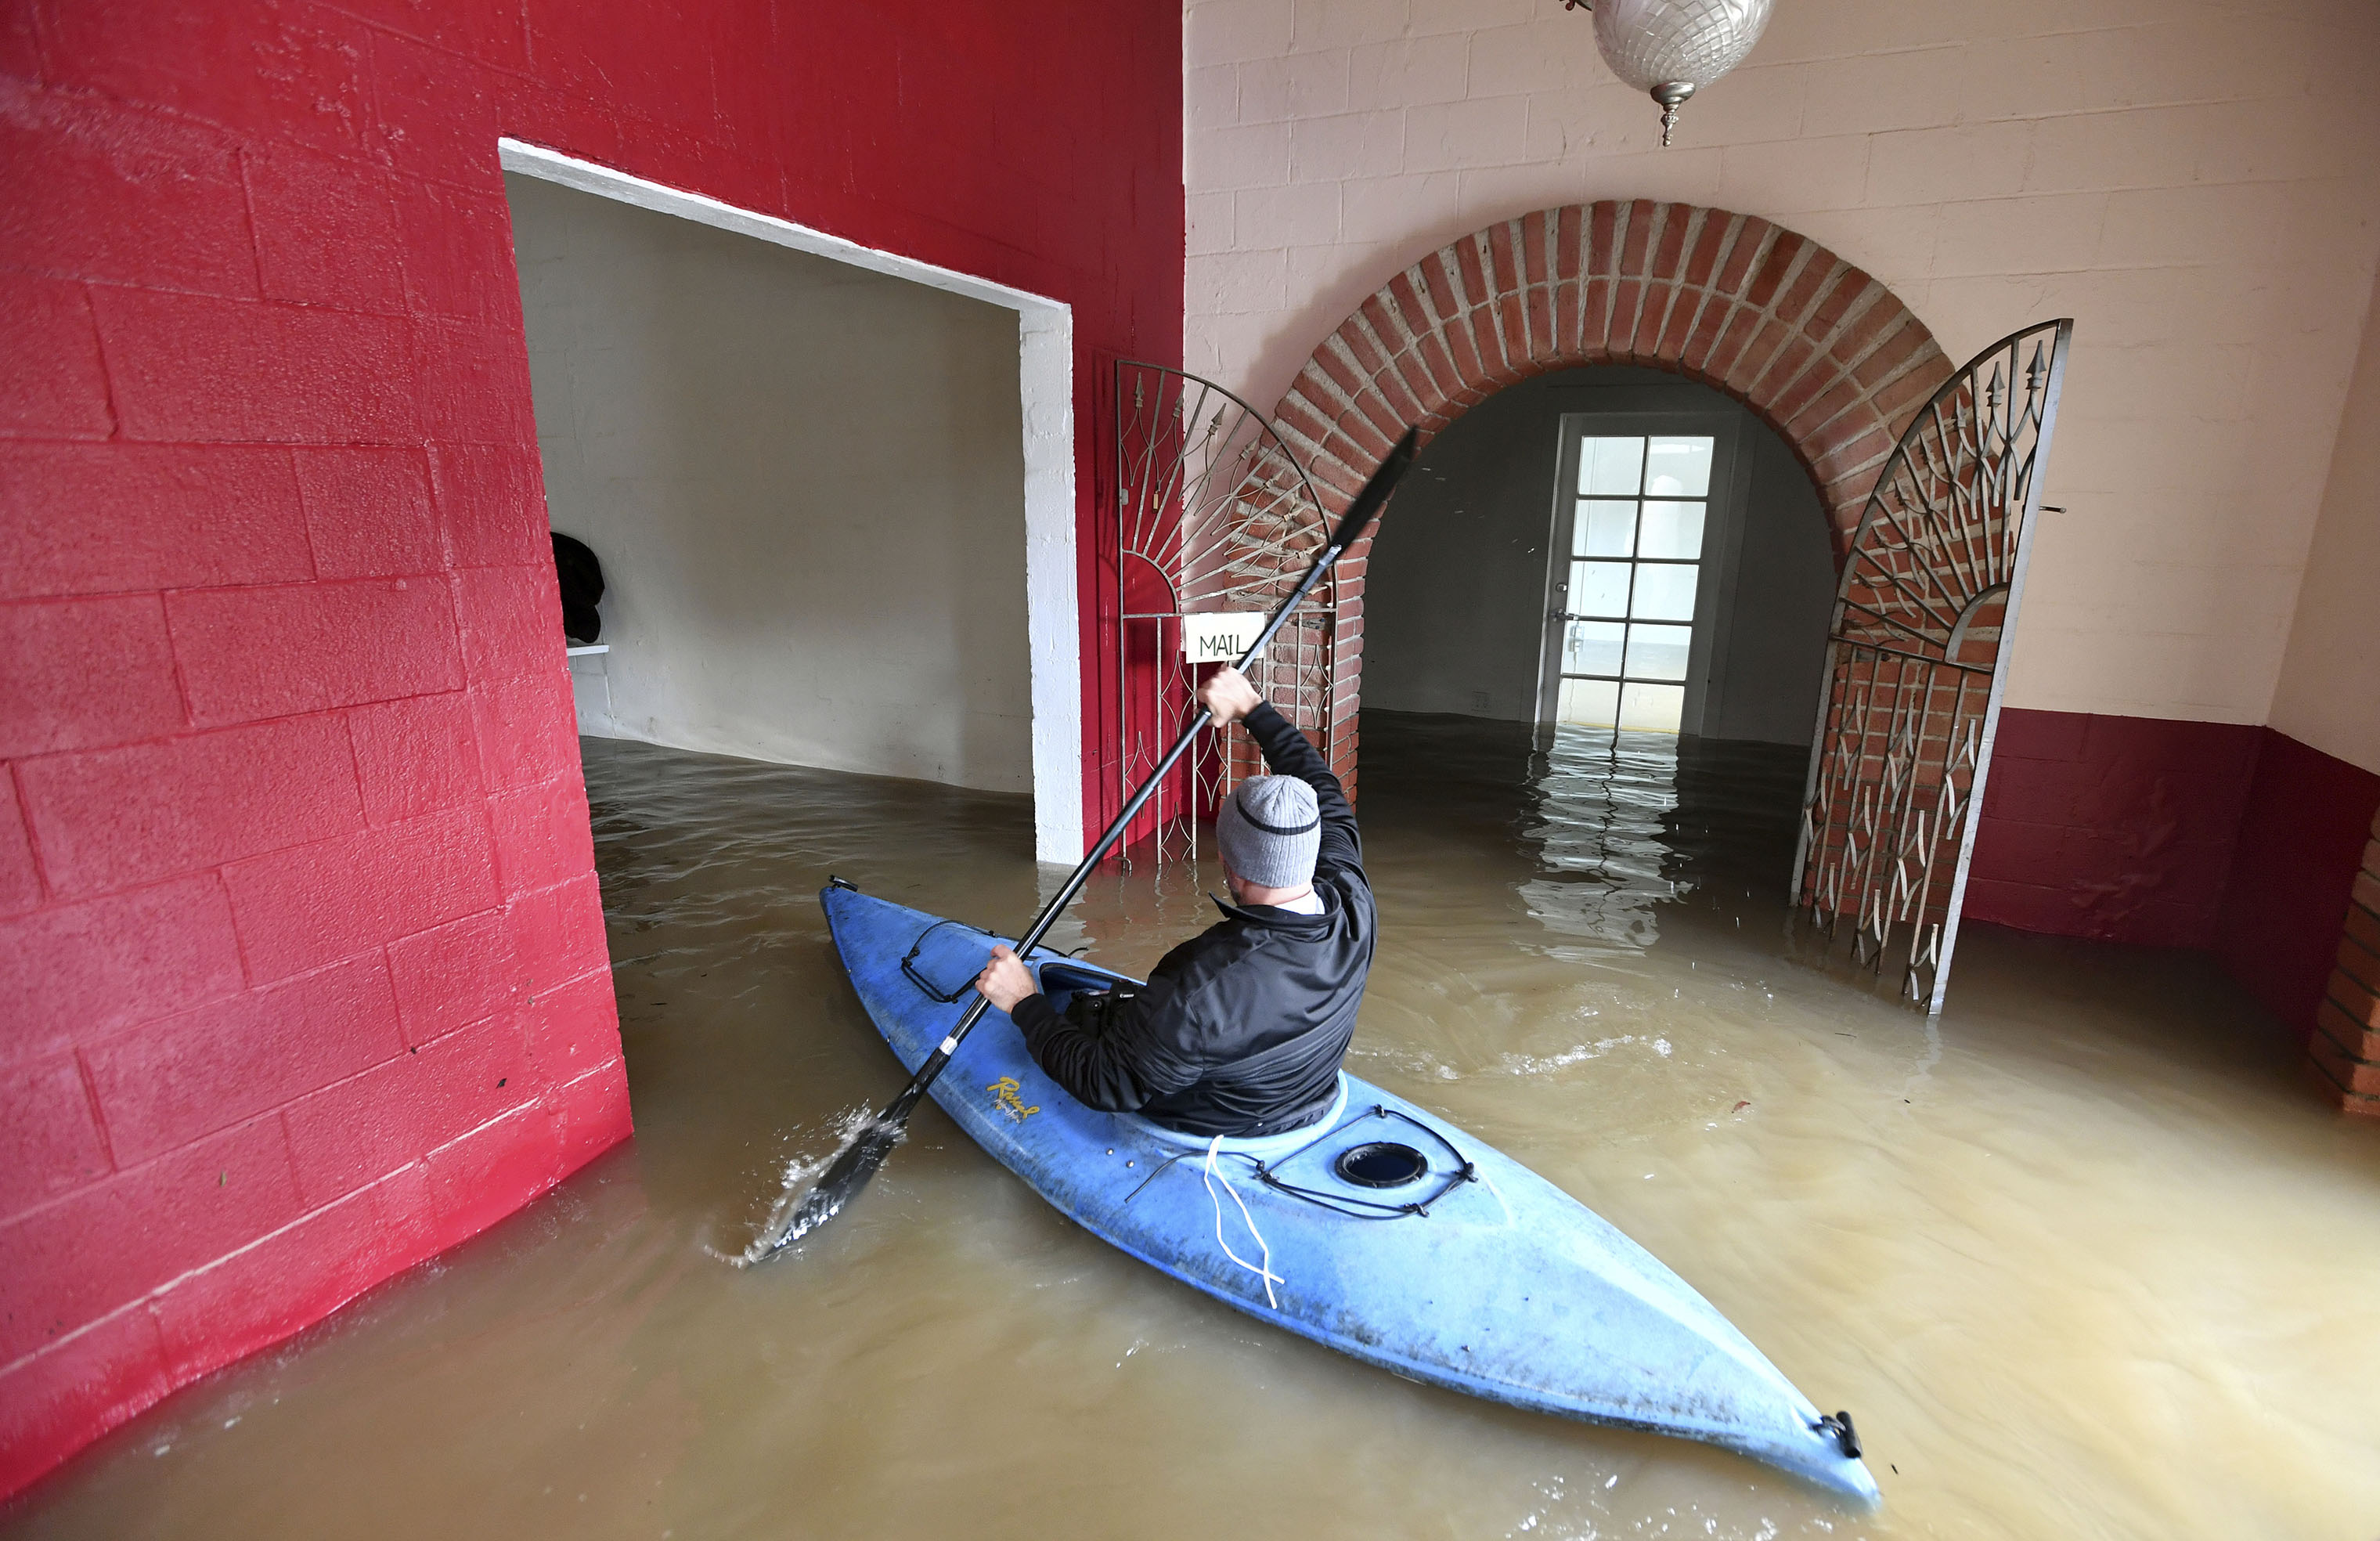 Jay Michael Tucker kayaks through the flooded Surrey Resort as the Russian River flows through it in Guerneville, Calif., on Feb. 15, 2019.